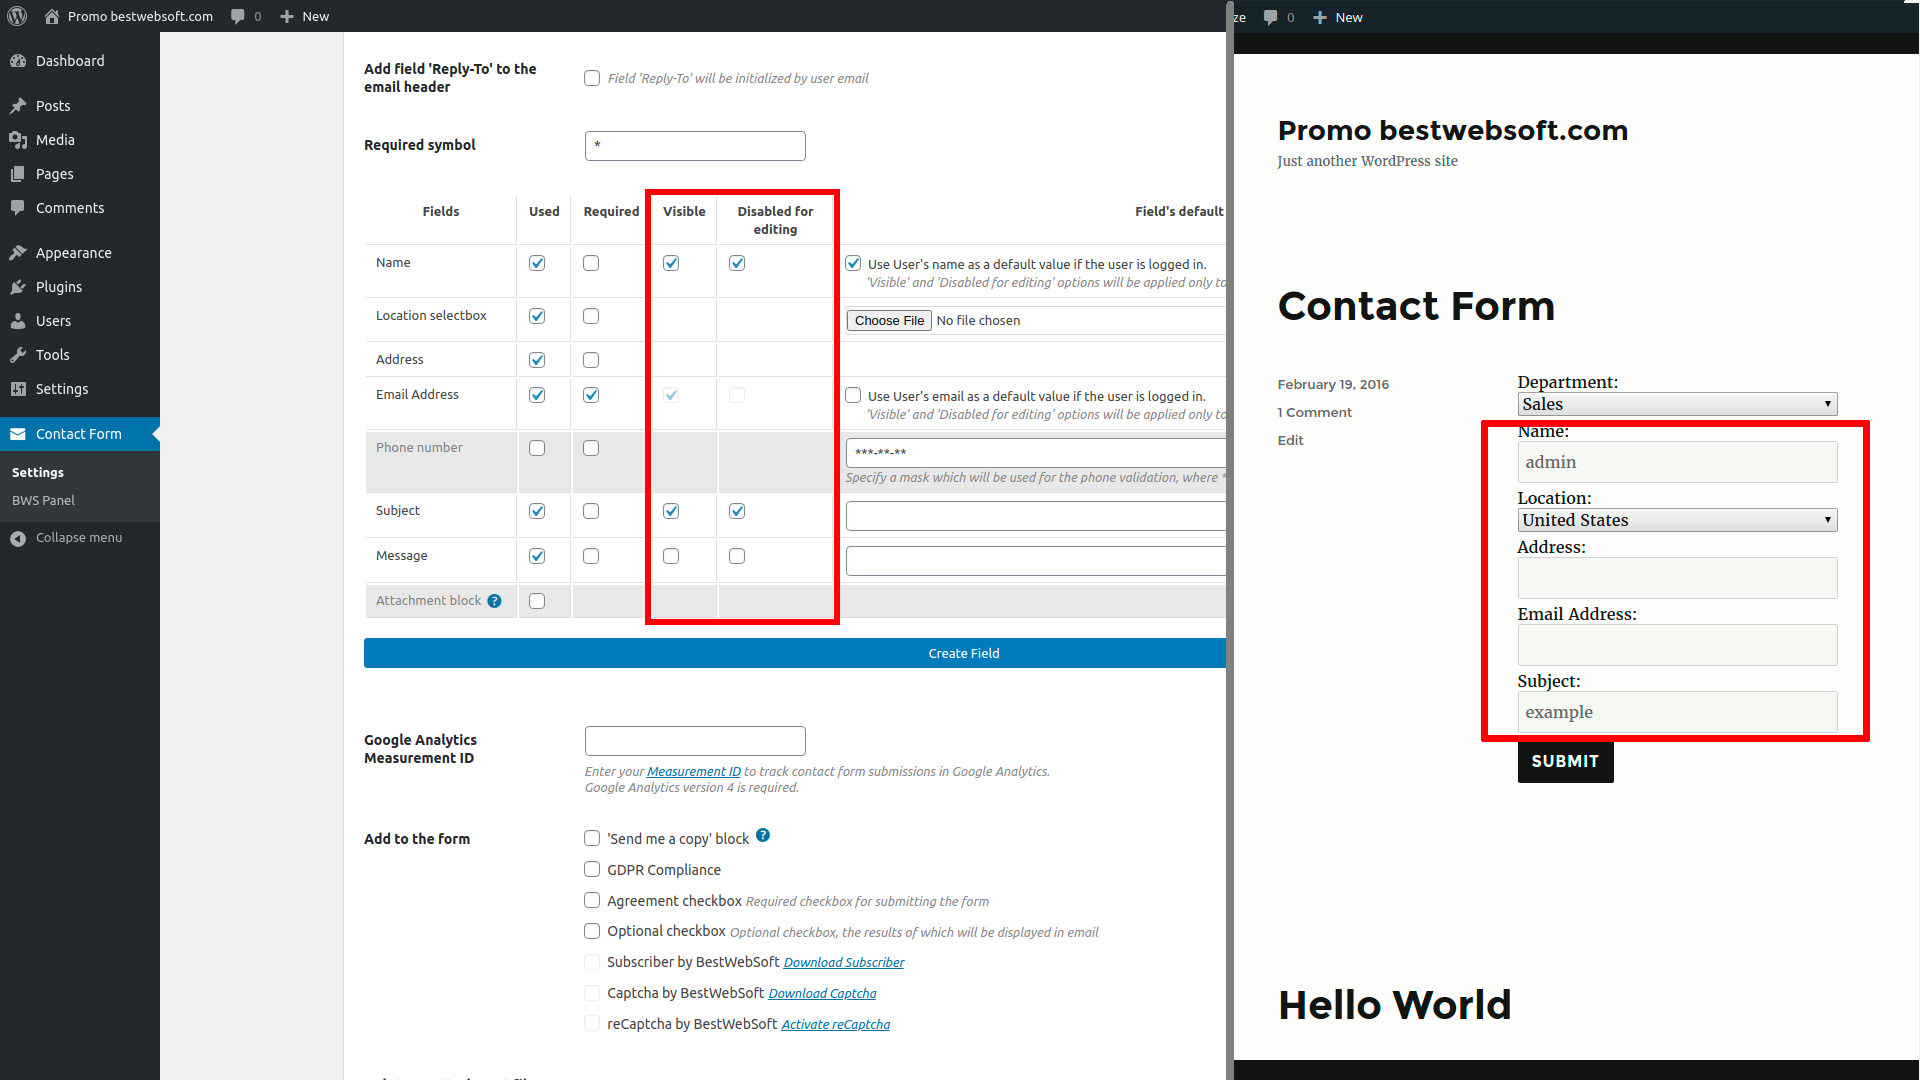 contact form screenshot 29